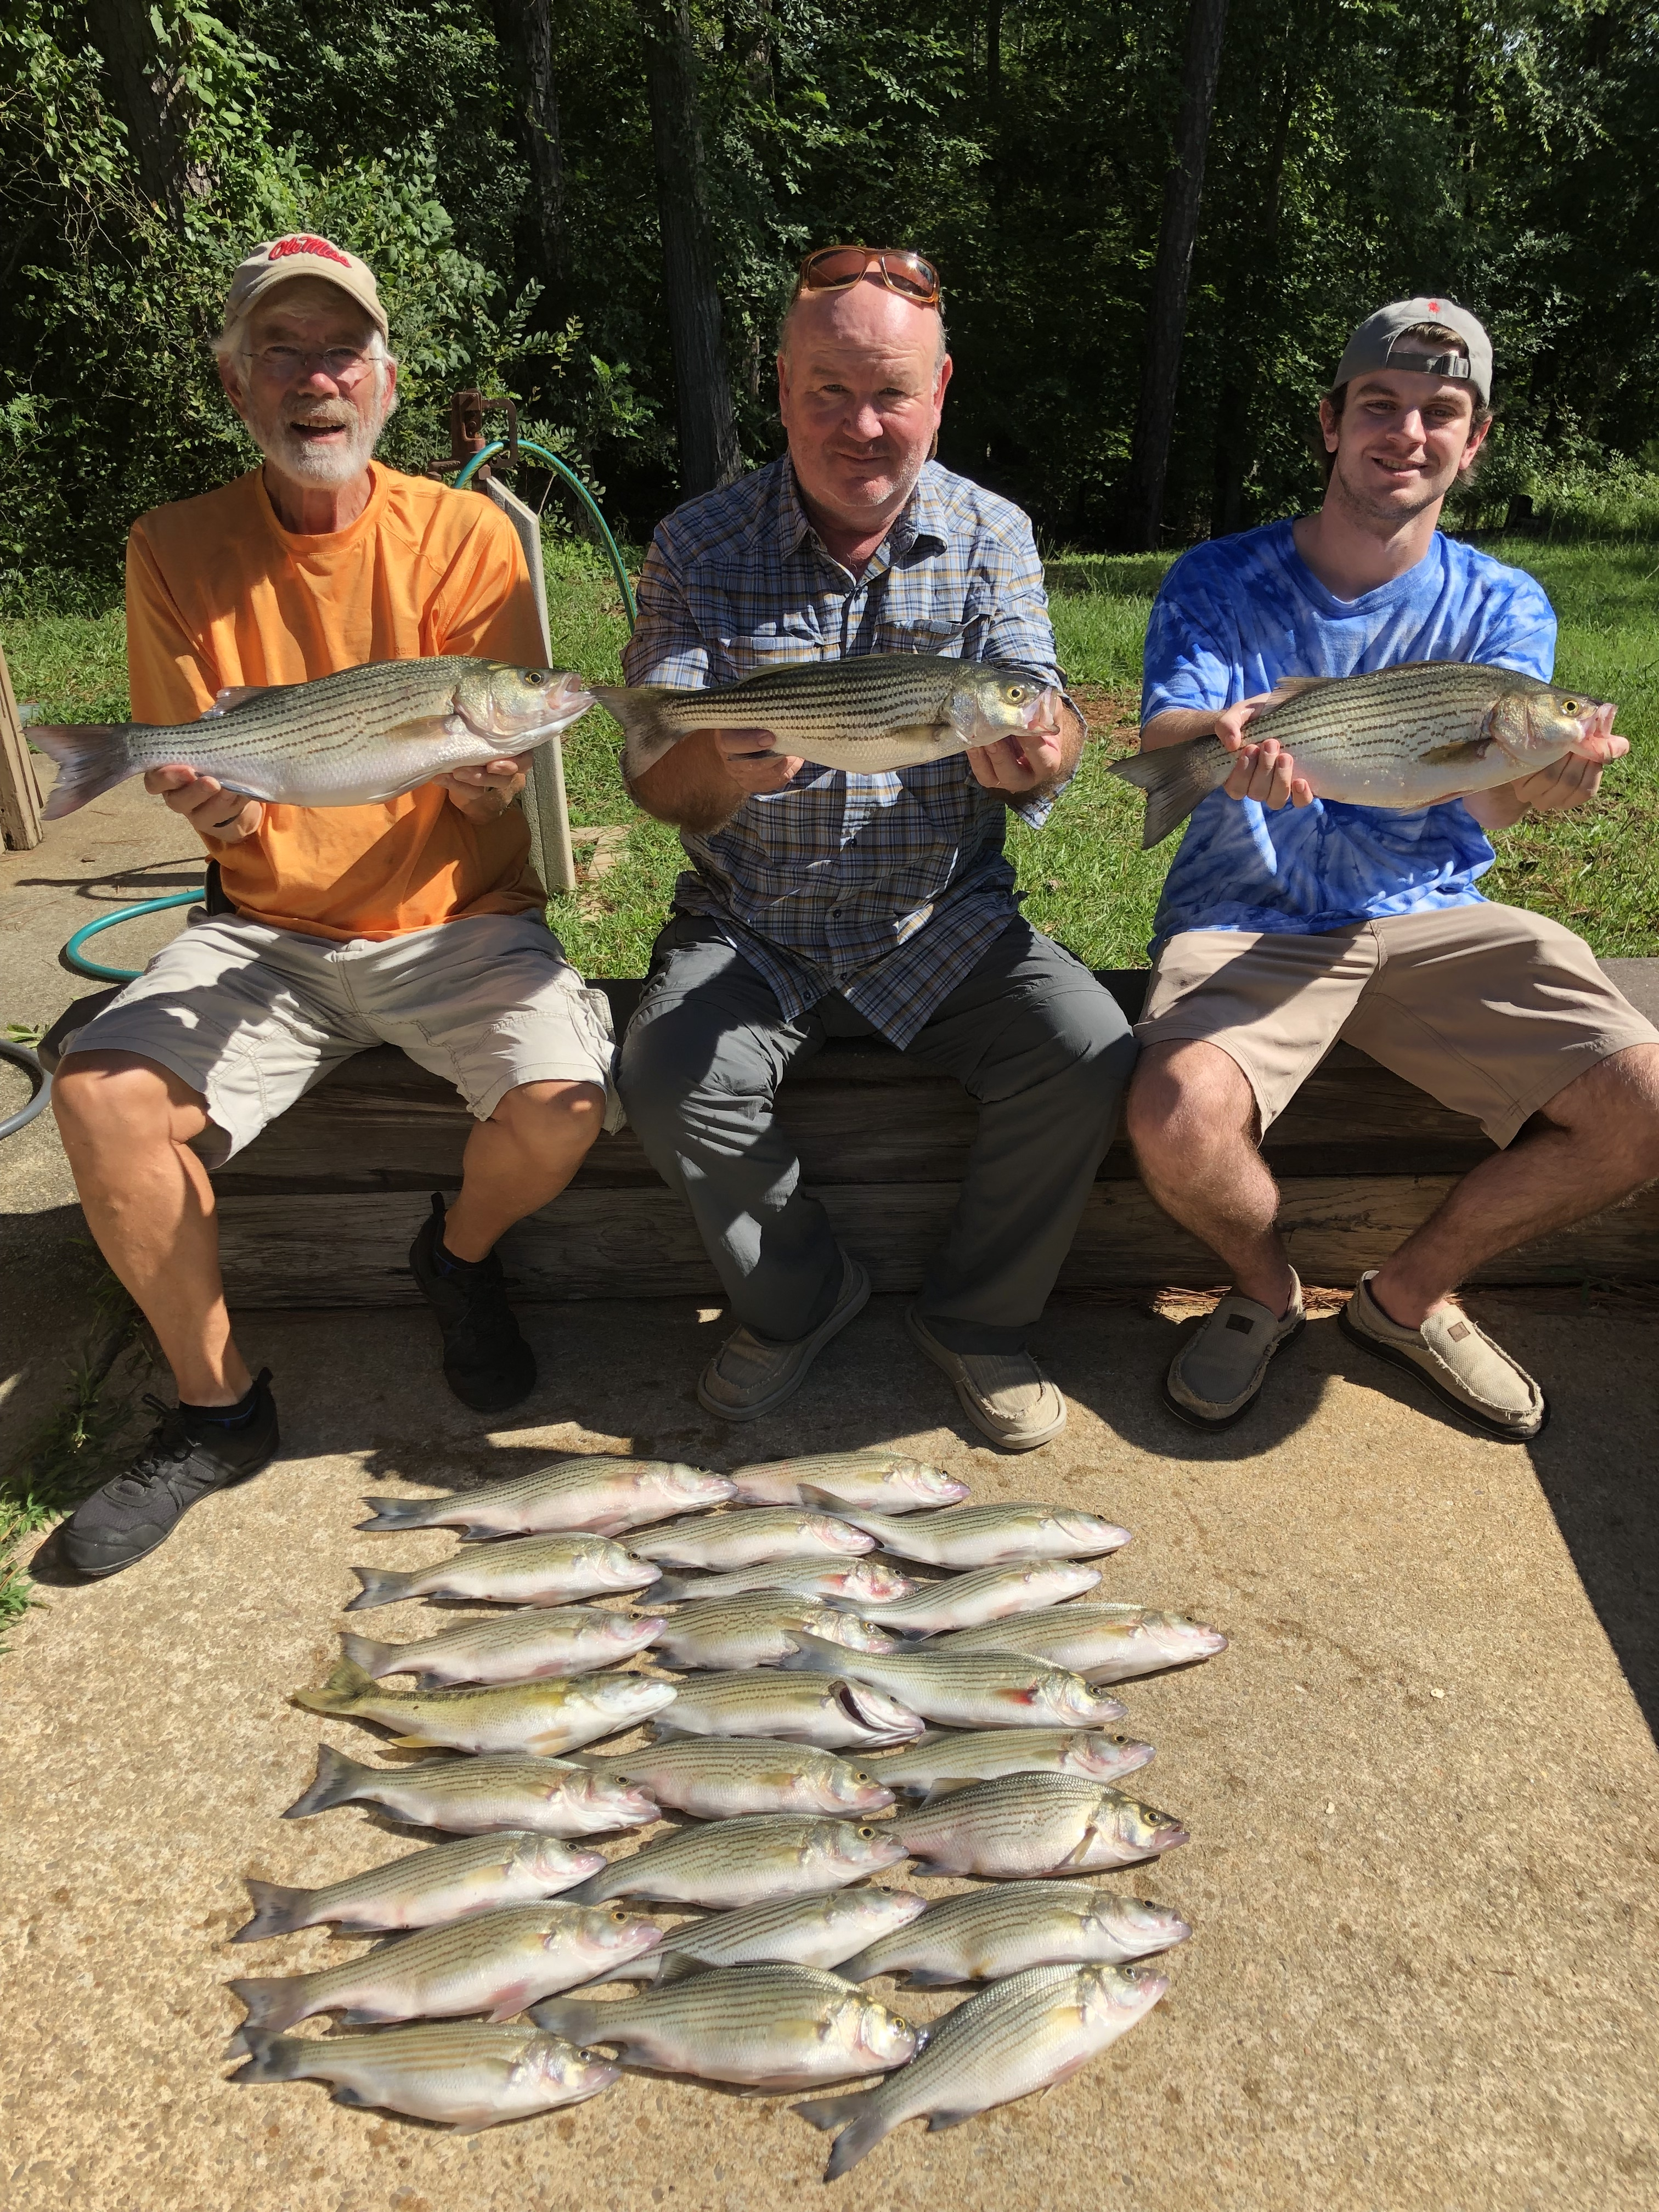 June-25-2019-Danny-Max-and-Richard-with-their-catch-of-the-day.